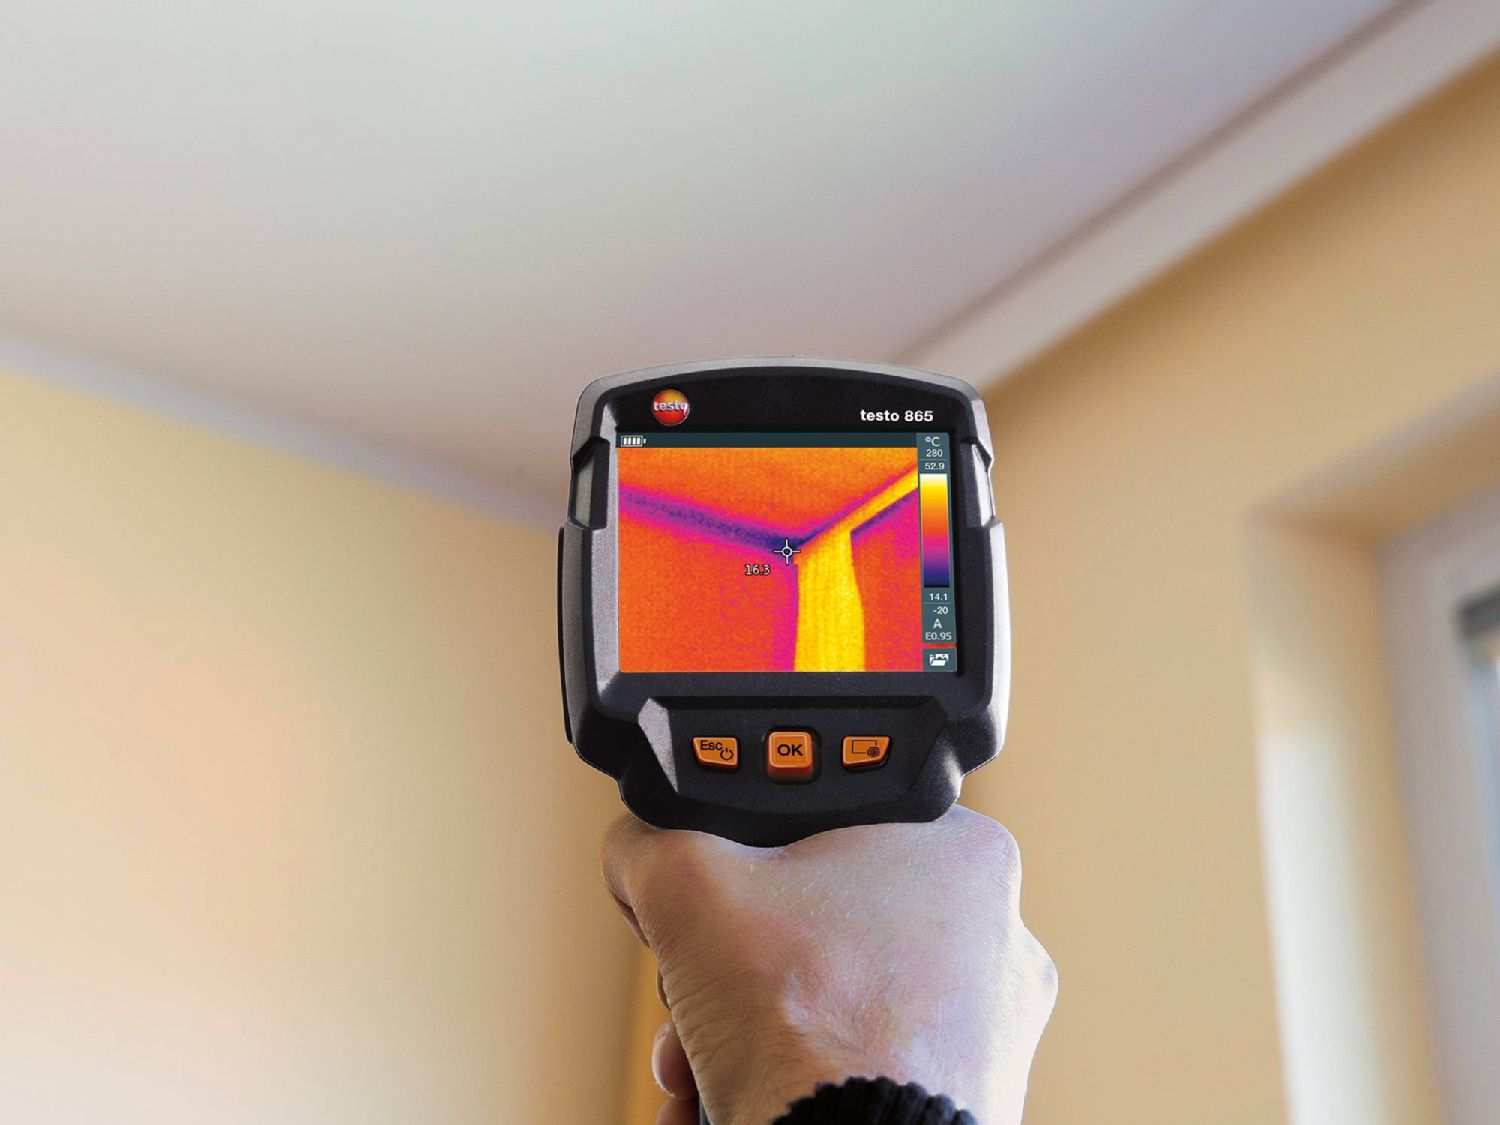 Mould risk detection with thermography